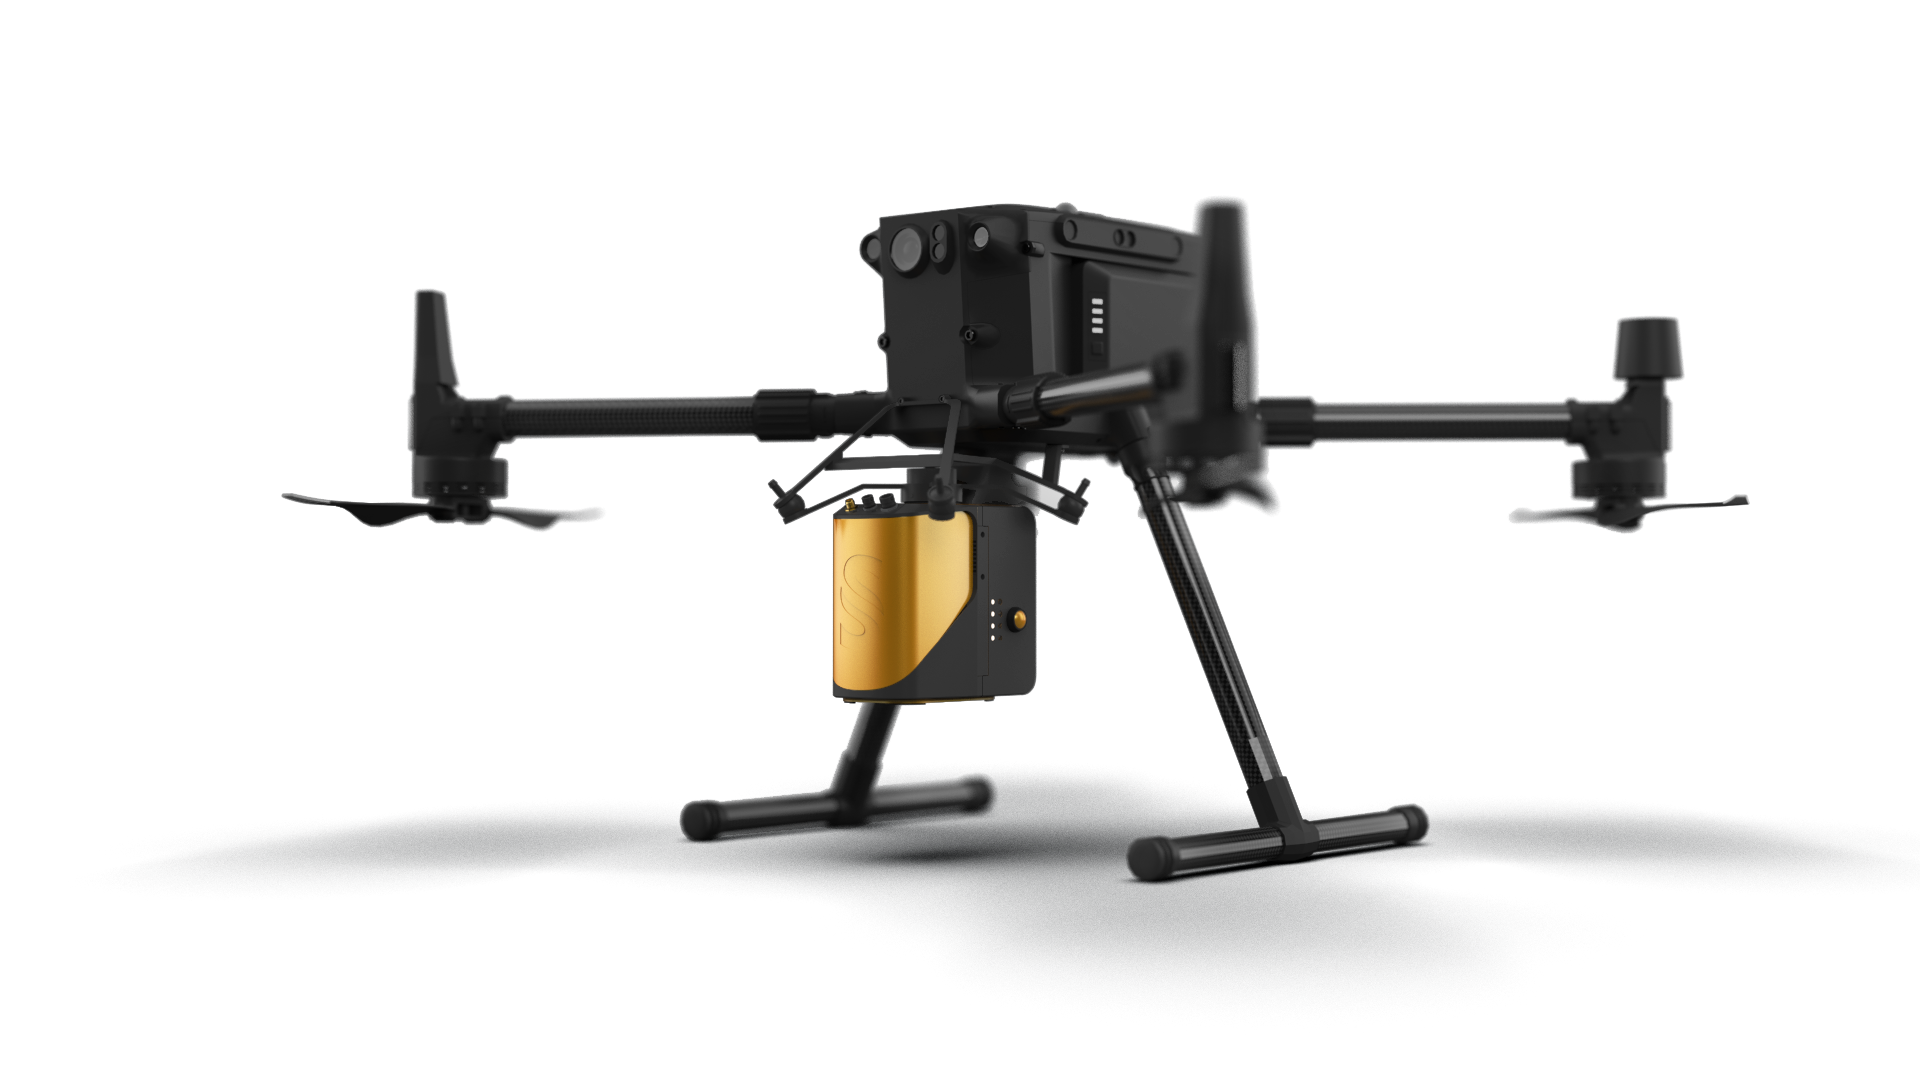 YellowScan Mapper - UAV Livox LiDAR-based solution on DJI M300 with Skyport - LiDAR mapping